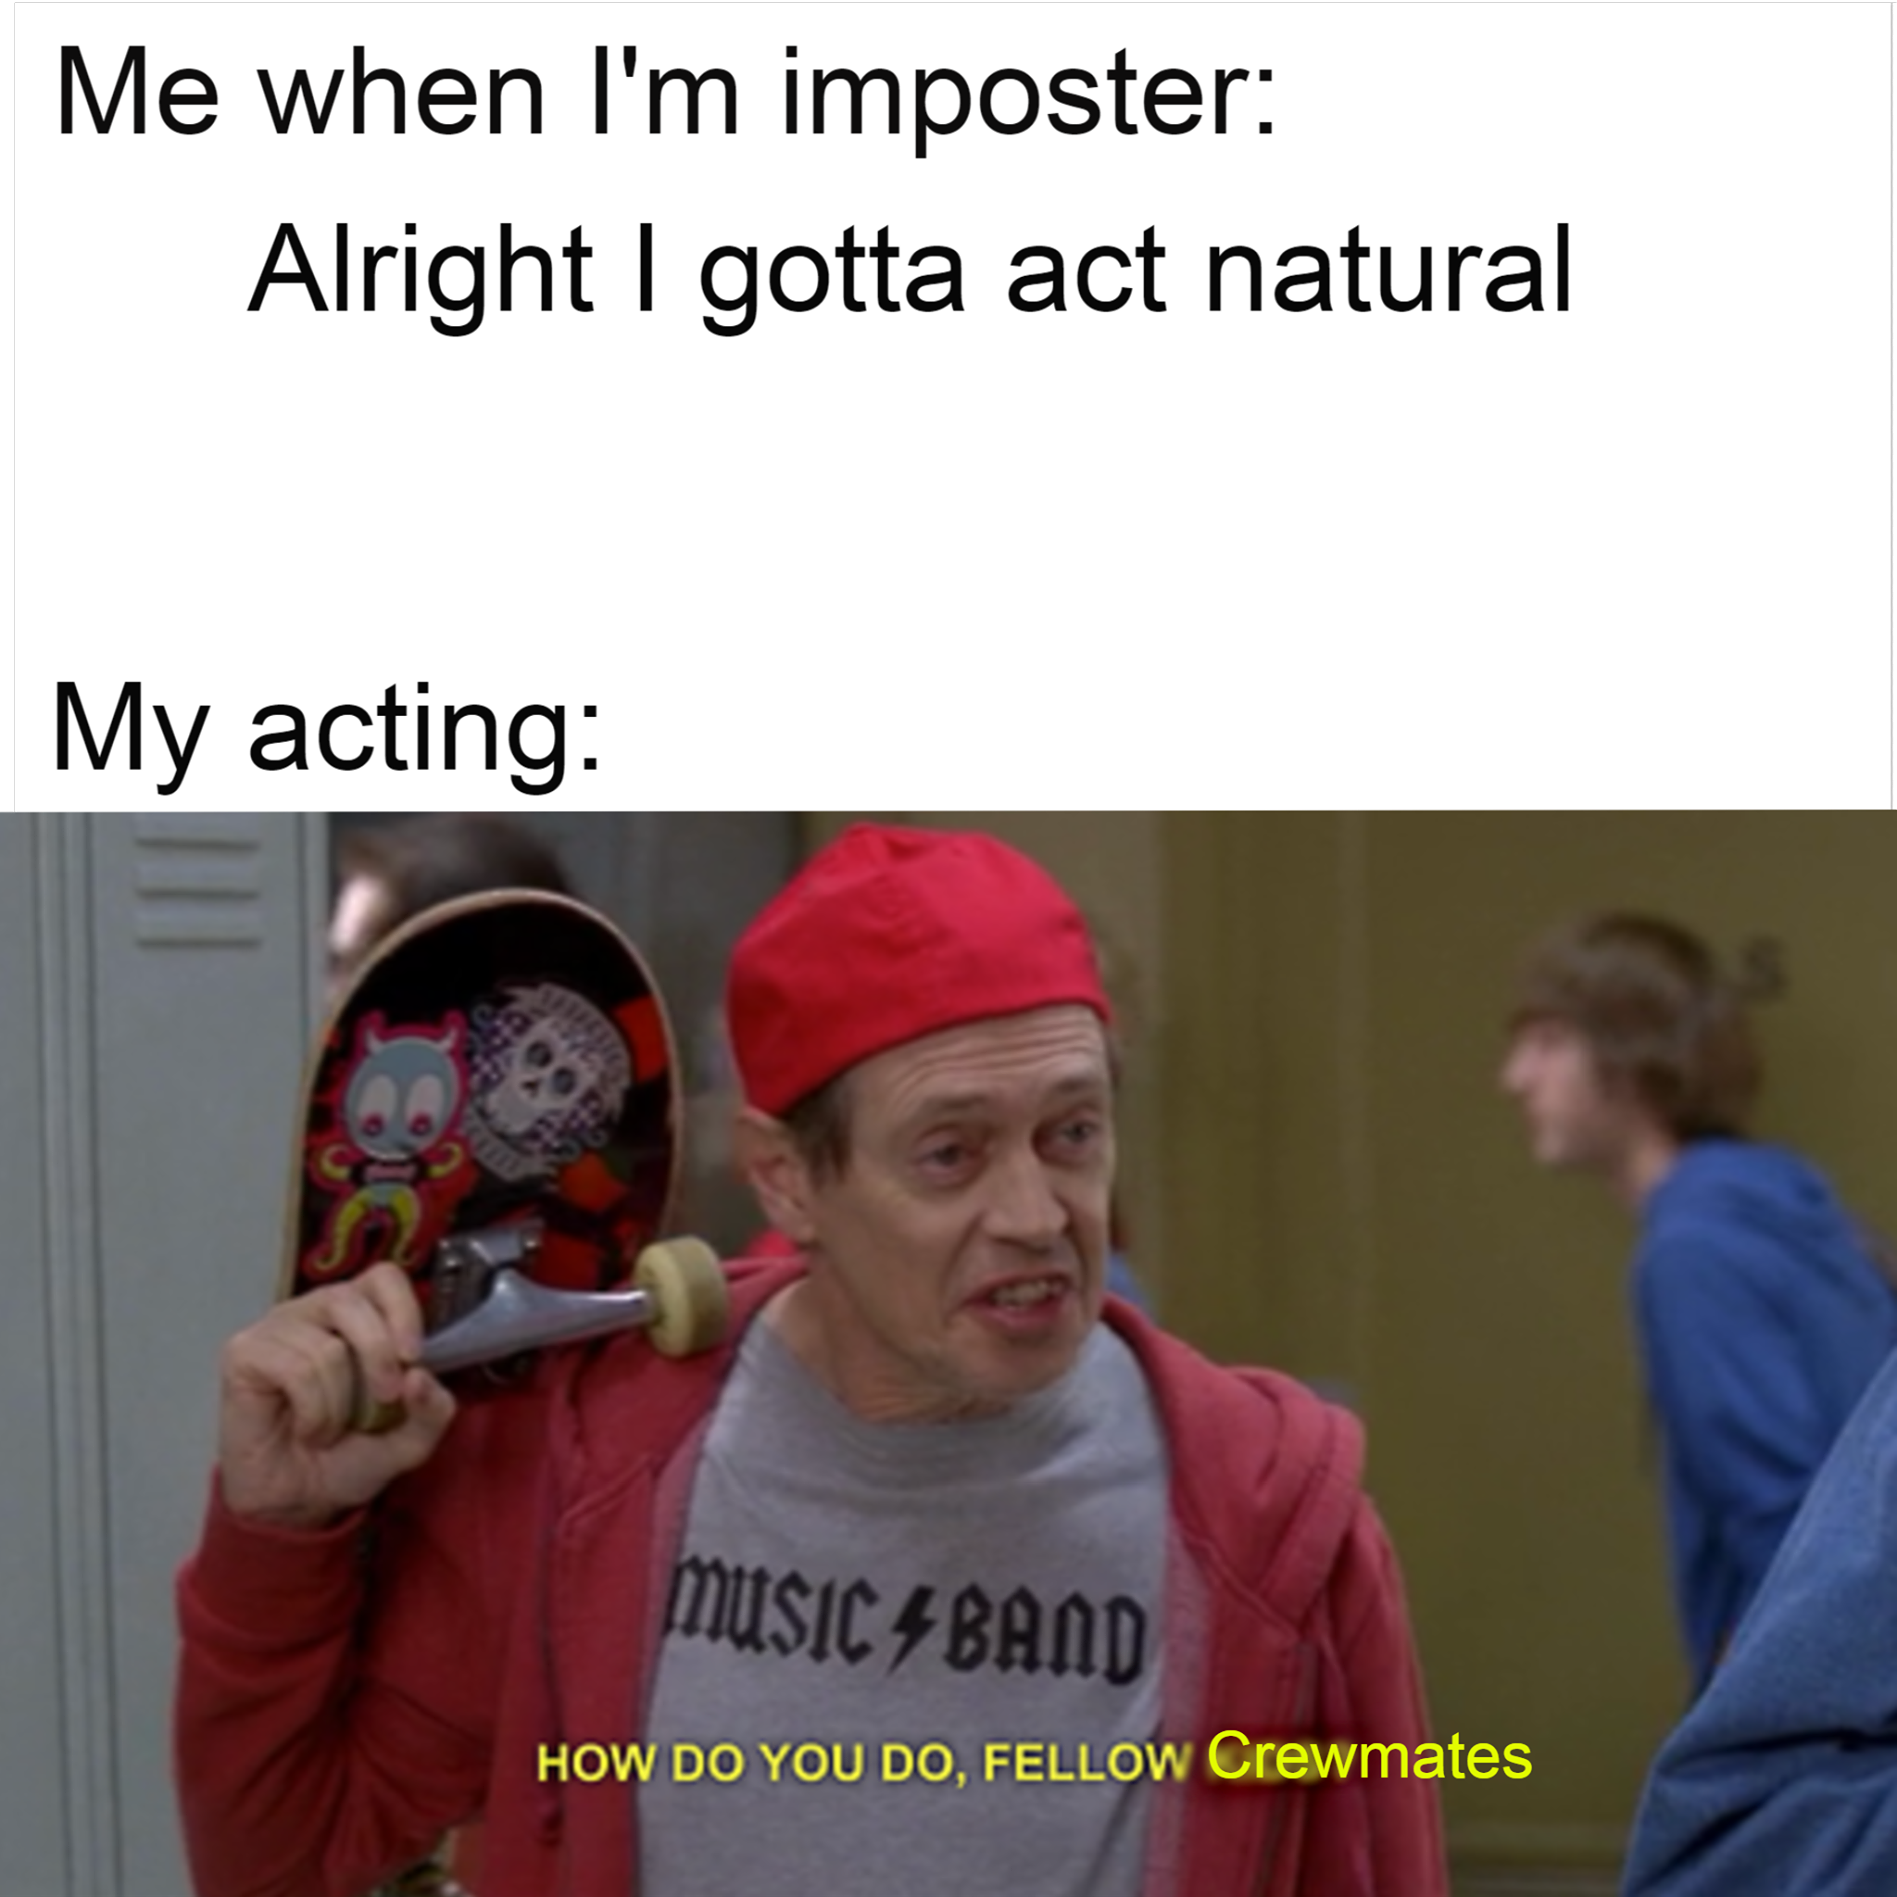 among-us-memes-me-when-im-an-imposter-alright-i-gotta-act ...